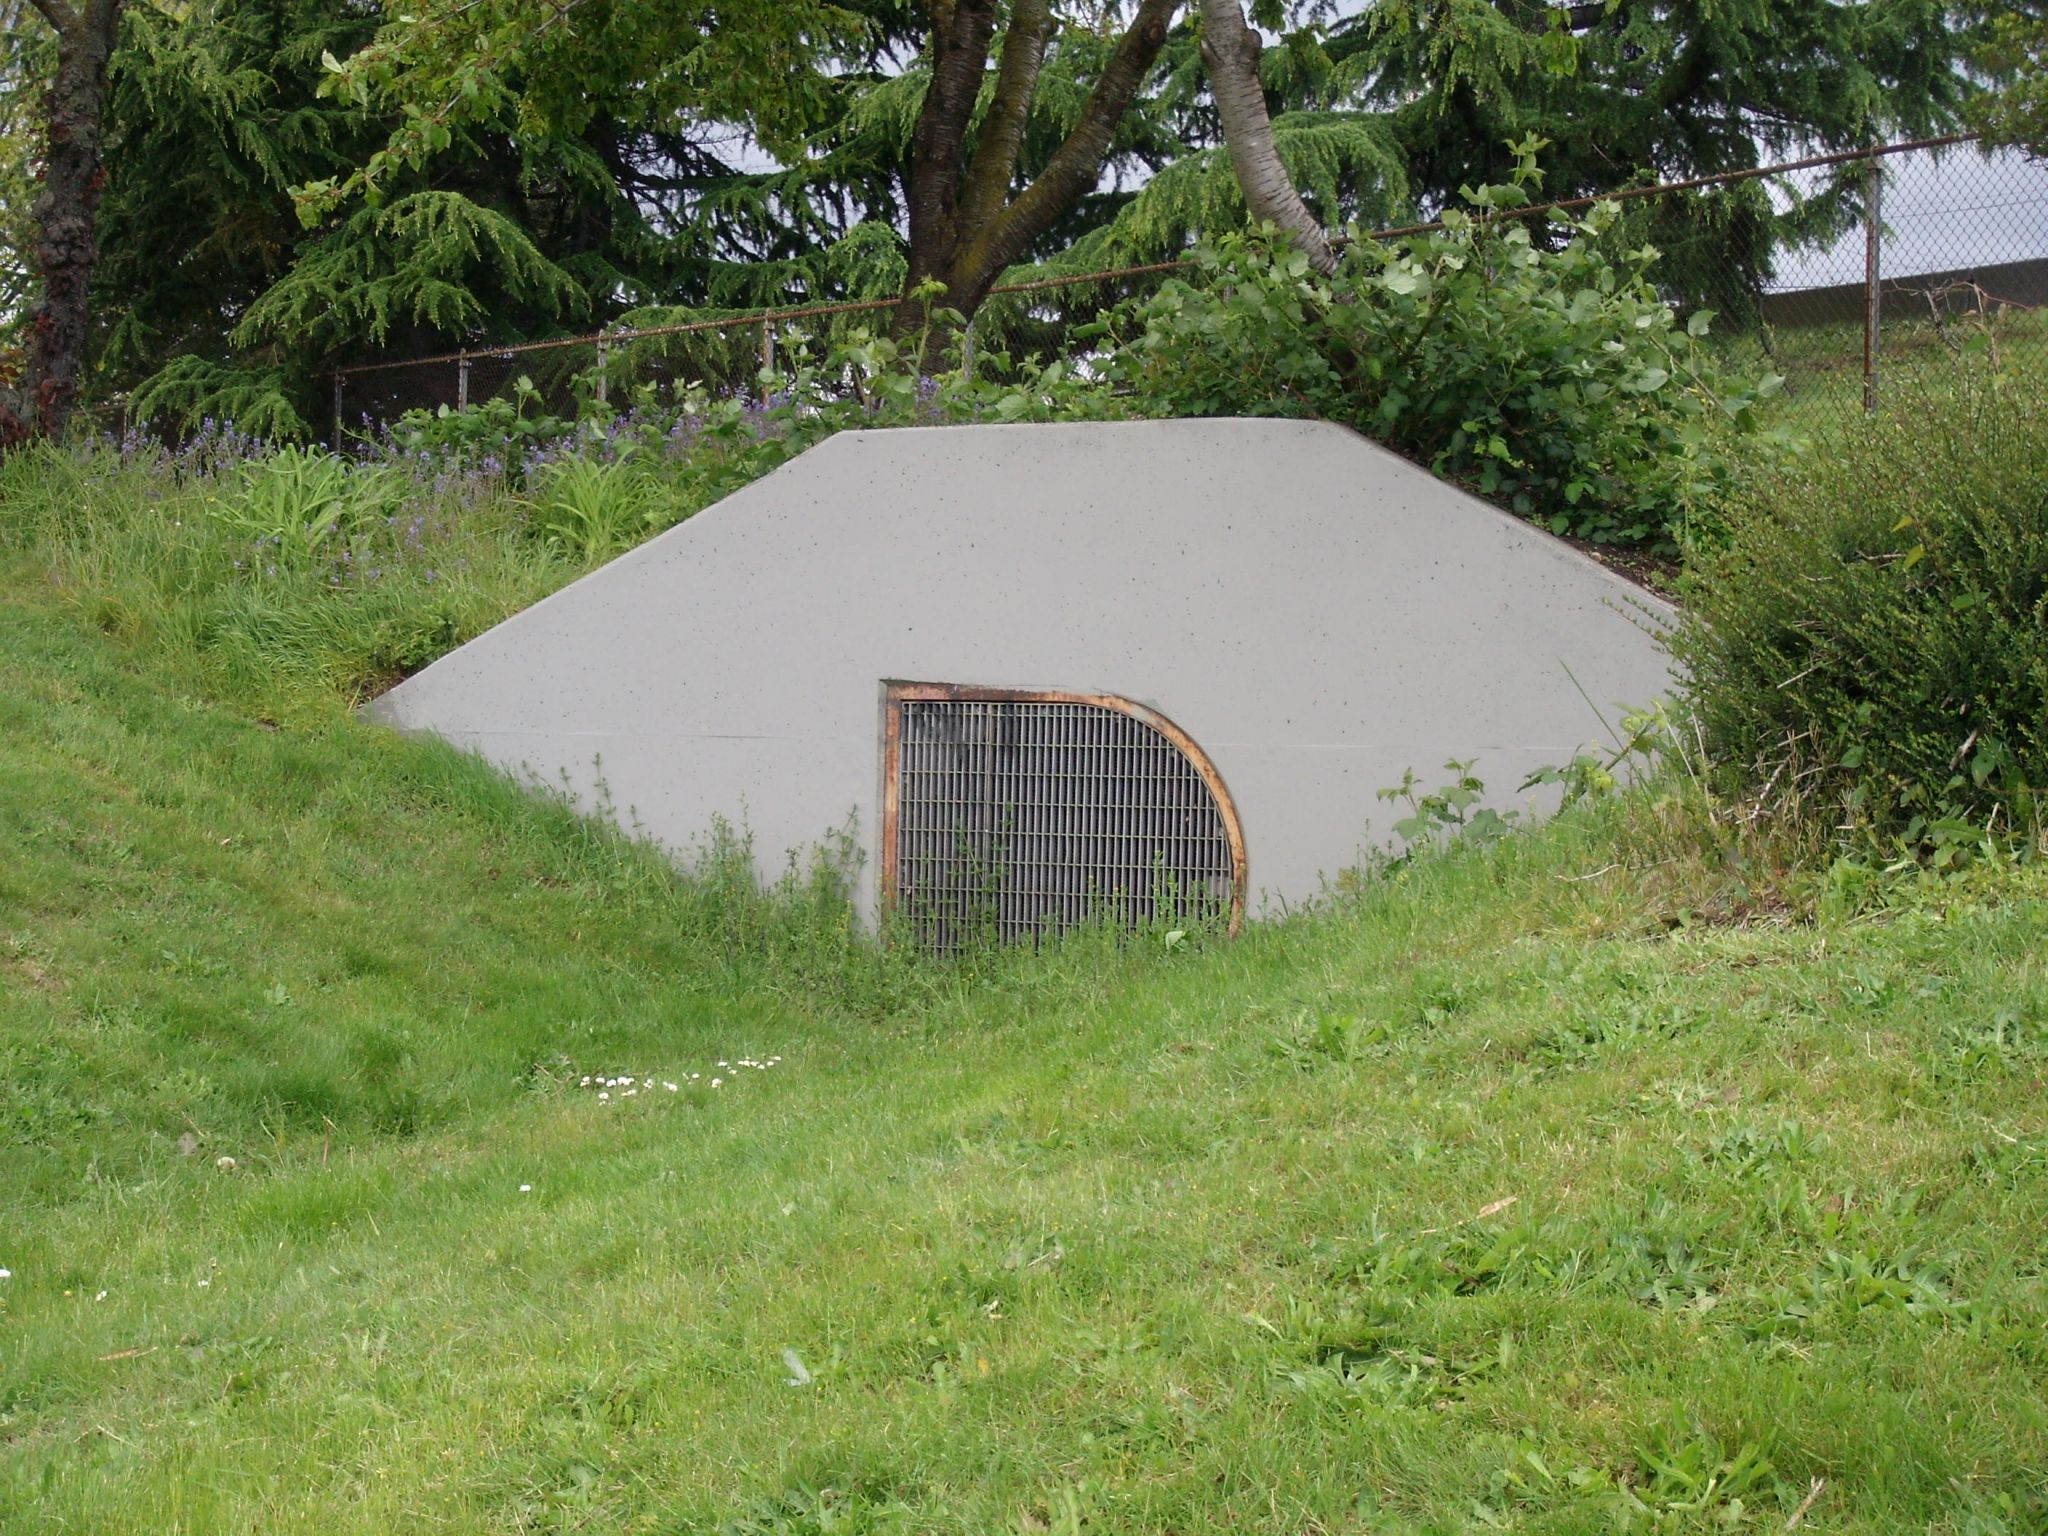 Today in history: Seattle began constructing the only U.S. fallout shelter tucked in an interstate